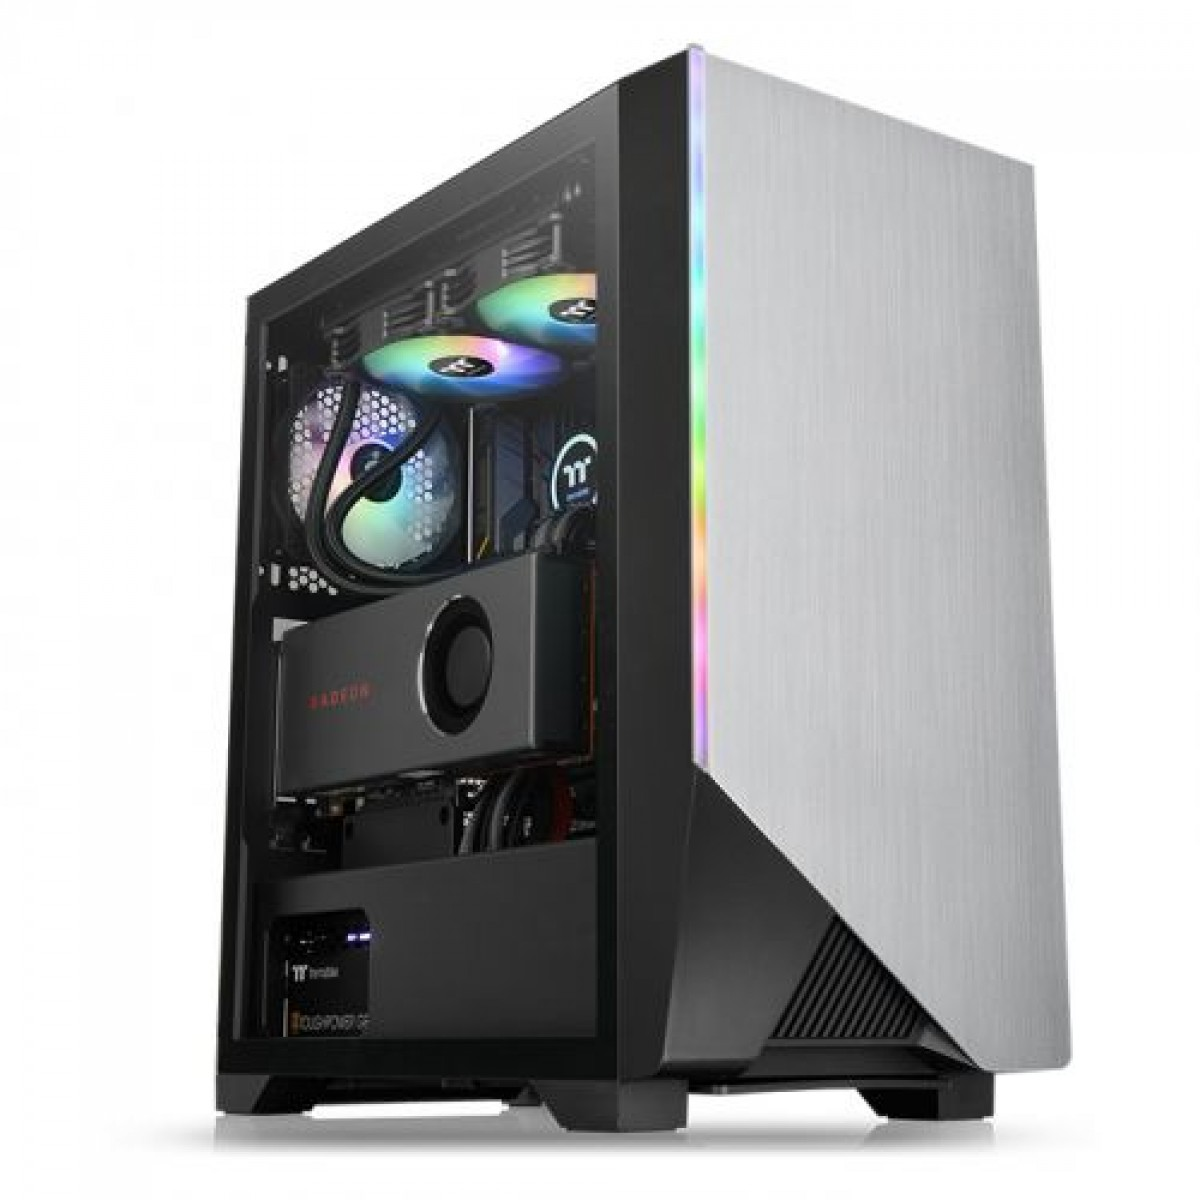 Computador Gamer, RYZEN 5 3600X 3.8Ghz, Placas de Vídeo RX 580 8GB DDR5, 8GB DDR4, HD 1TB